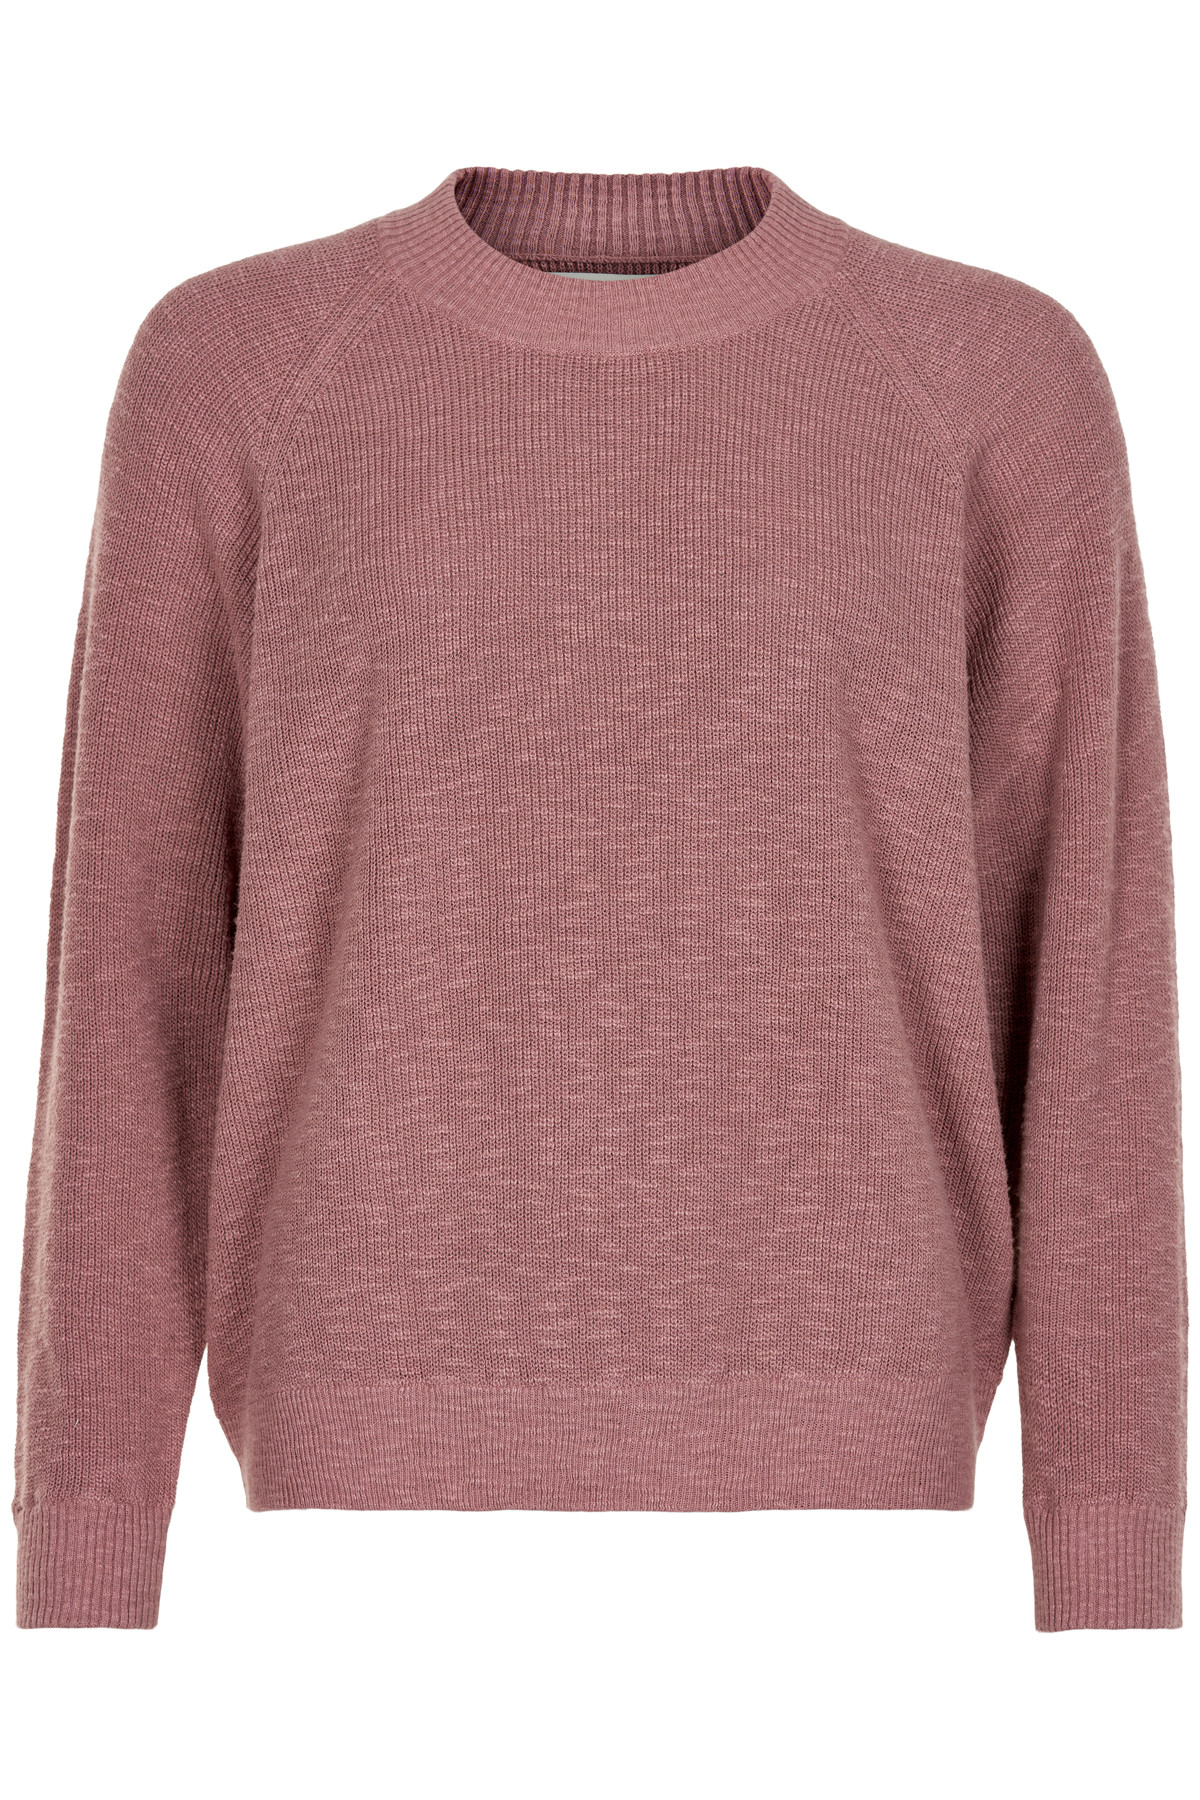 Image of   AND LESS ALBAMBINA PULLOVER 5220201 2530 (Nosta Rose, XL)